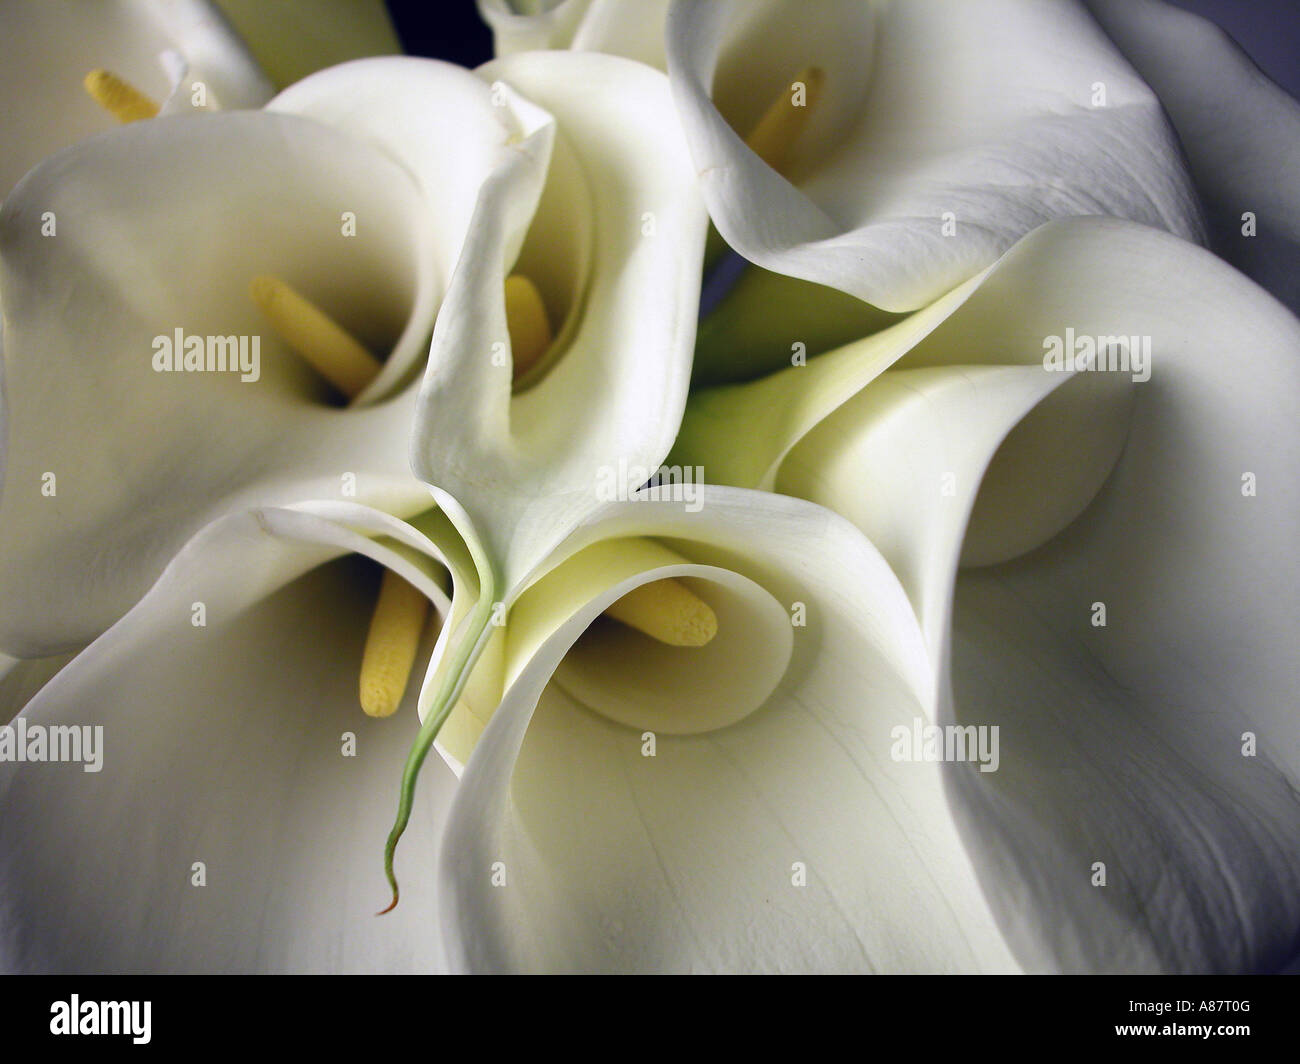 Bouquet of Calla Lilies. - Stock Image